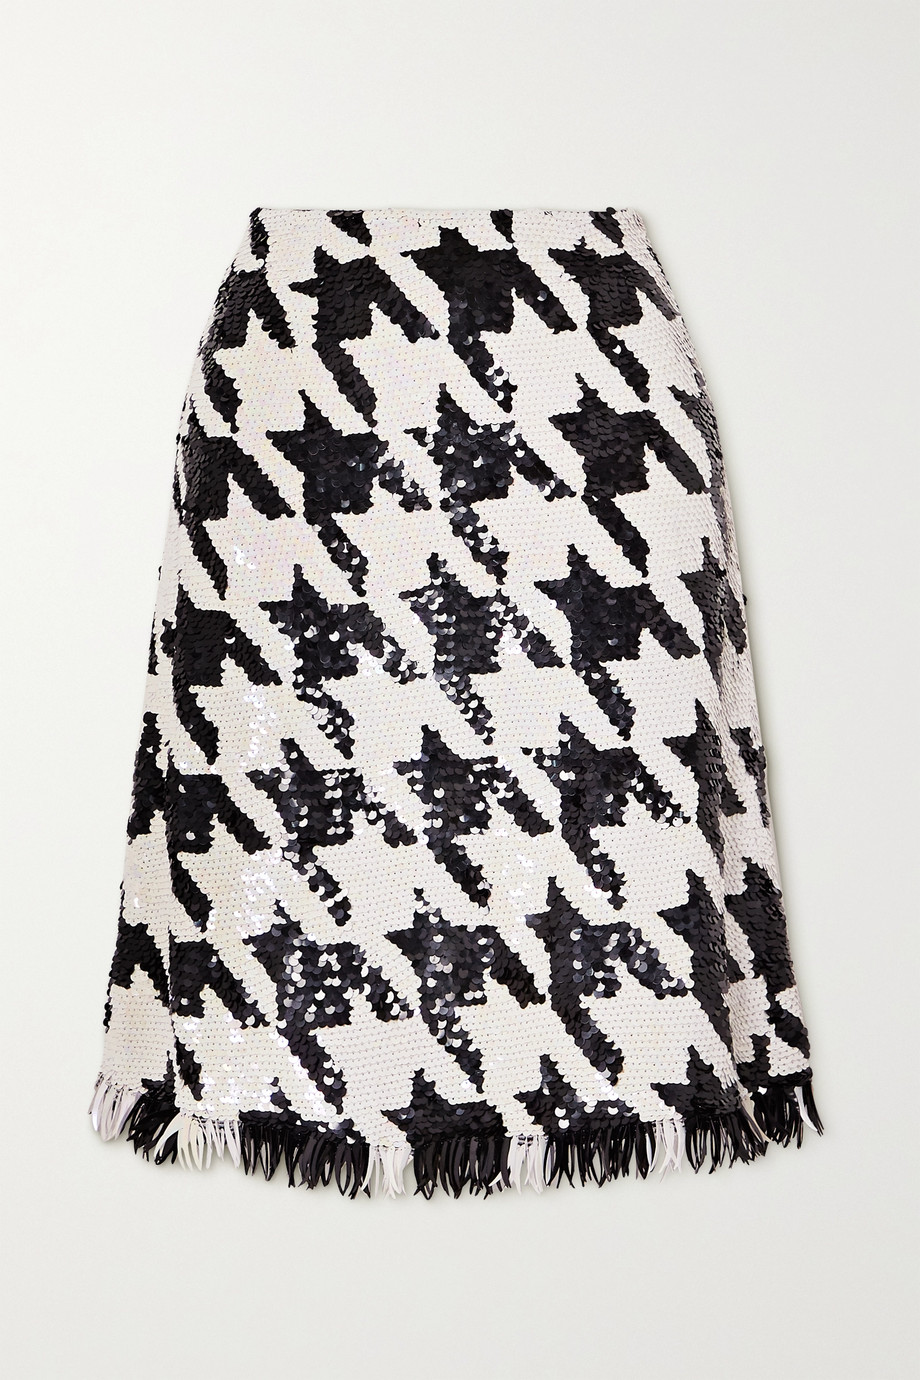 ASHISH Fringed houndstooth sequined cotton skirt